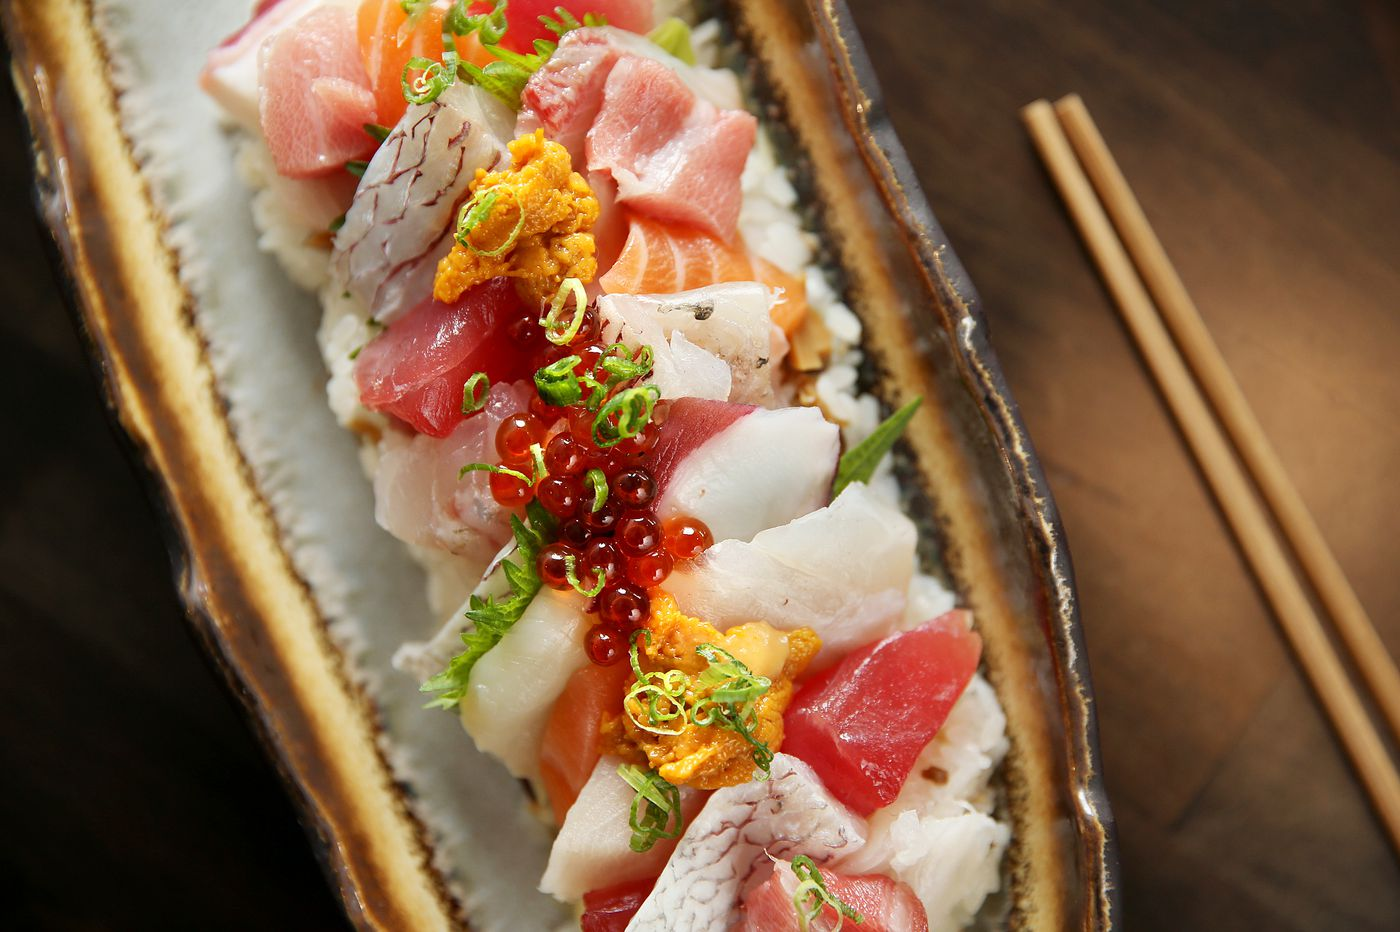 Sushi Hatsu review: Ambitious sushi, and a fresh start for chef, now in downtown Ambler